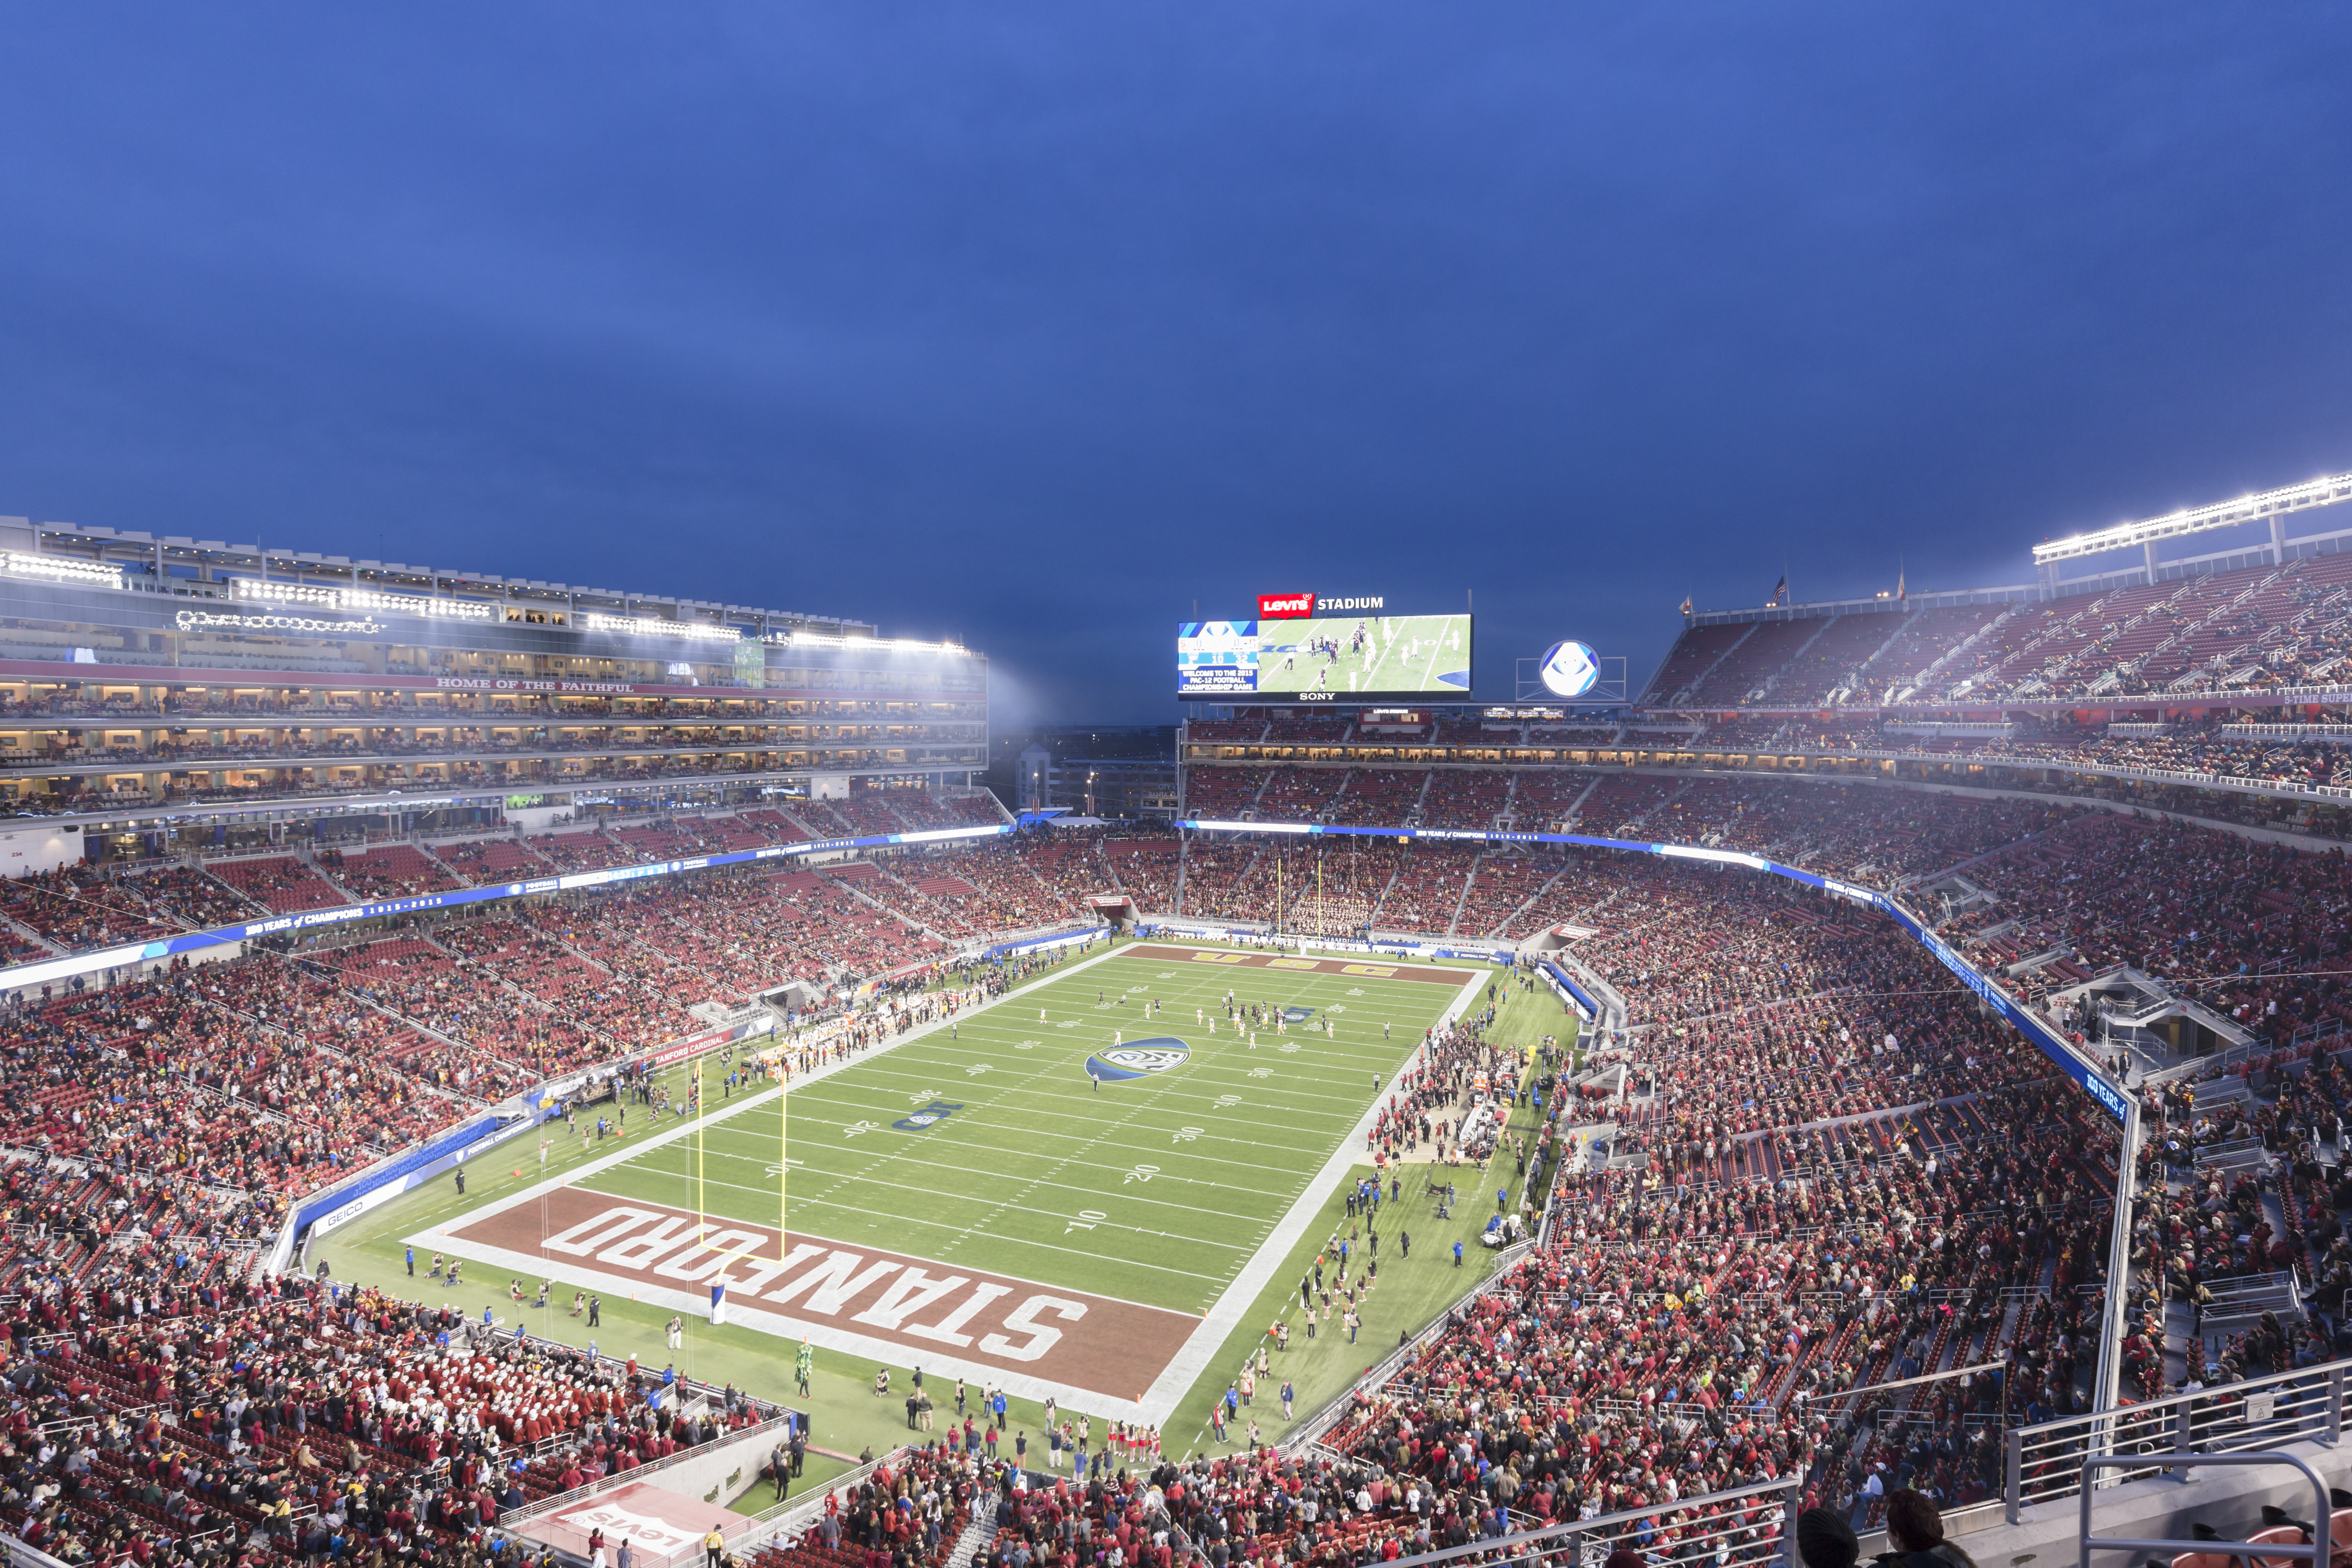 """The San Francisco 49ers moved into Levi's Stadium in Santa Clara, Calif., in 2014 after playing at Candlestick Park for 43 seasons. Levi's, the first NFL stadium with LEED Gold certification, has a """"green roof"""" and is also installing three bridges covered in solar panels."""